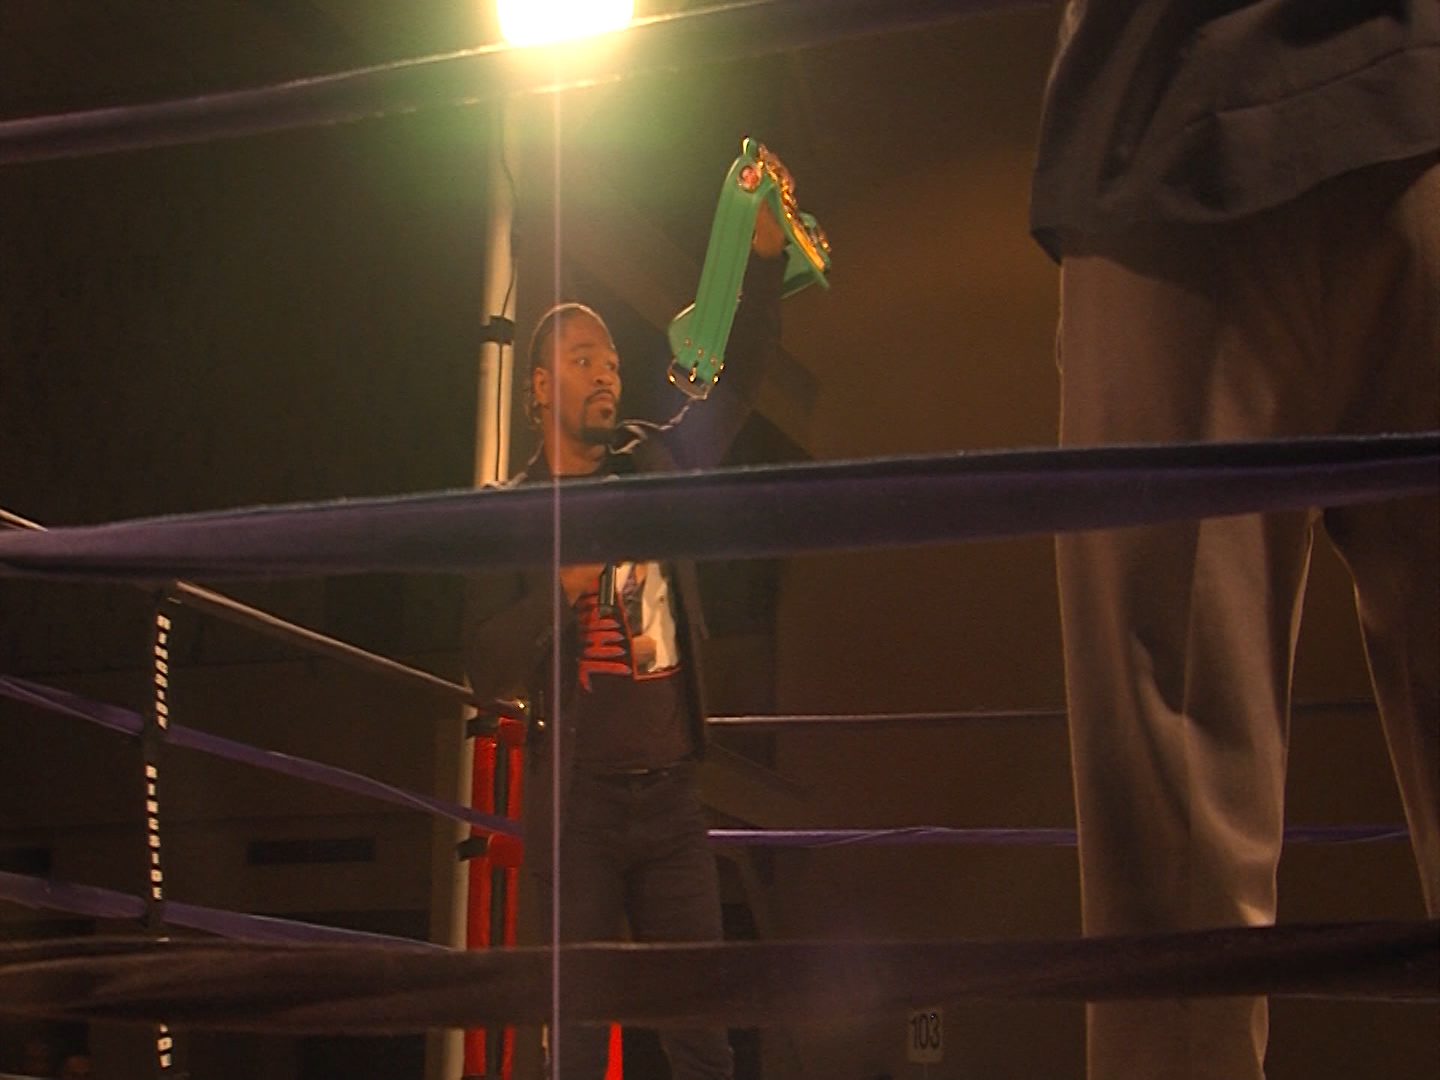 WBC Welterweight Champion Shawn Porter returns to Delmarva